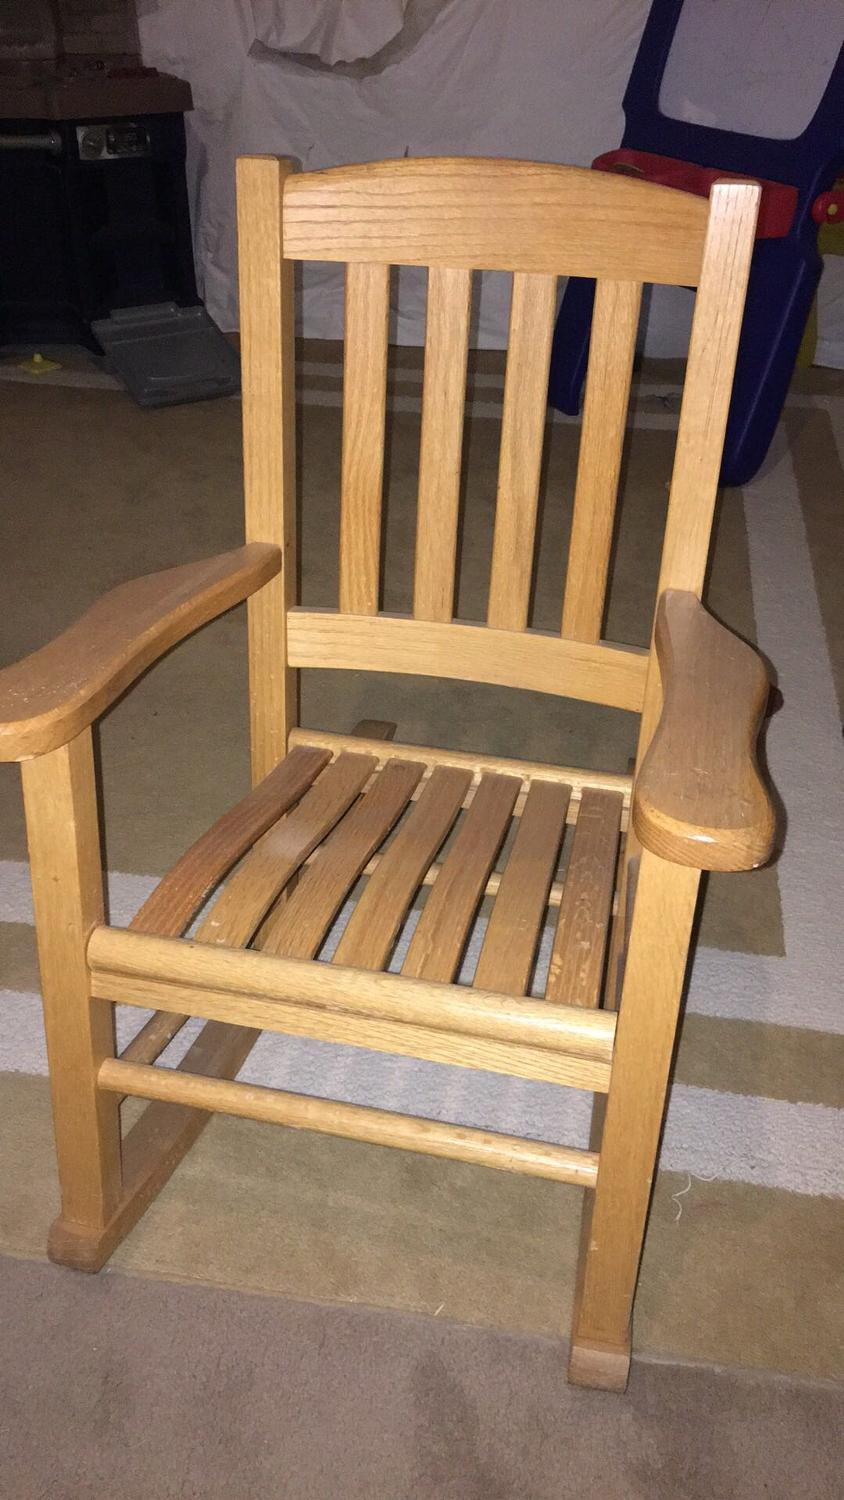 childrens rocking chairs | eBay